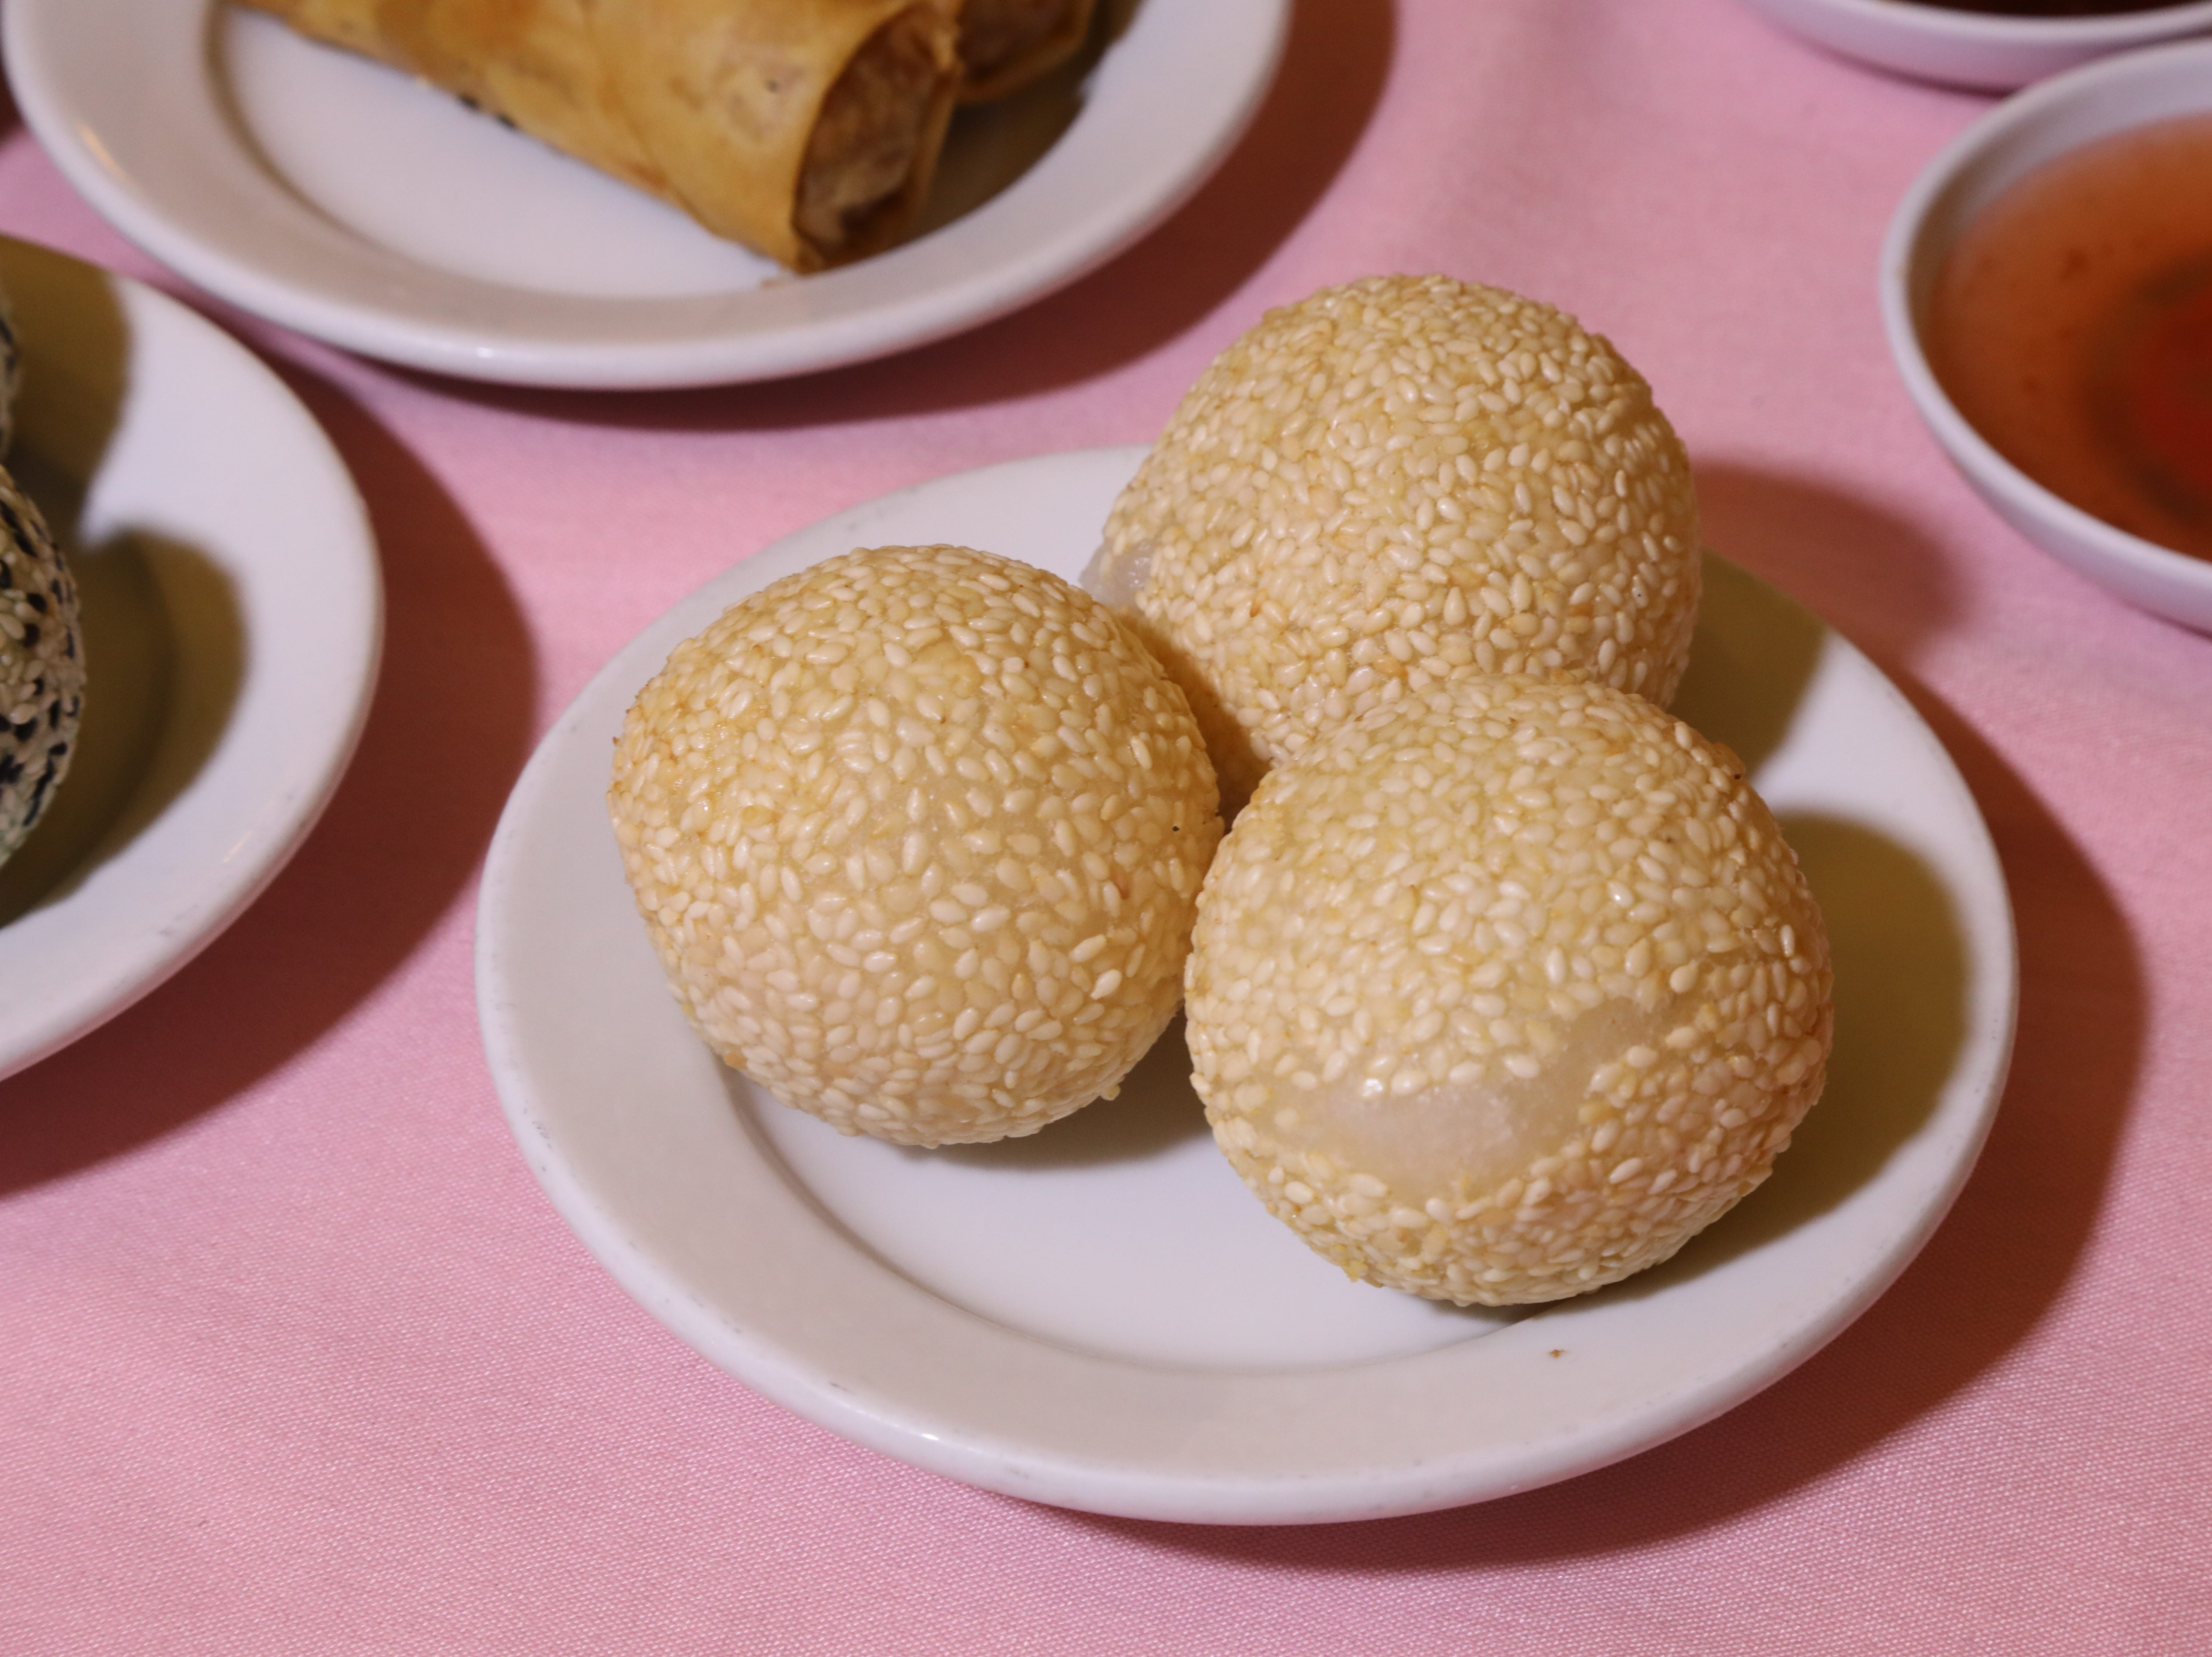 Sesame balls are part of a large selection of appetizers at Noodle Wong.